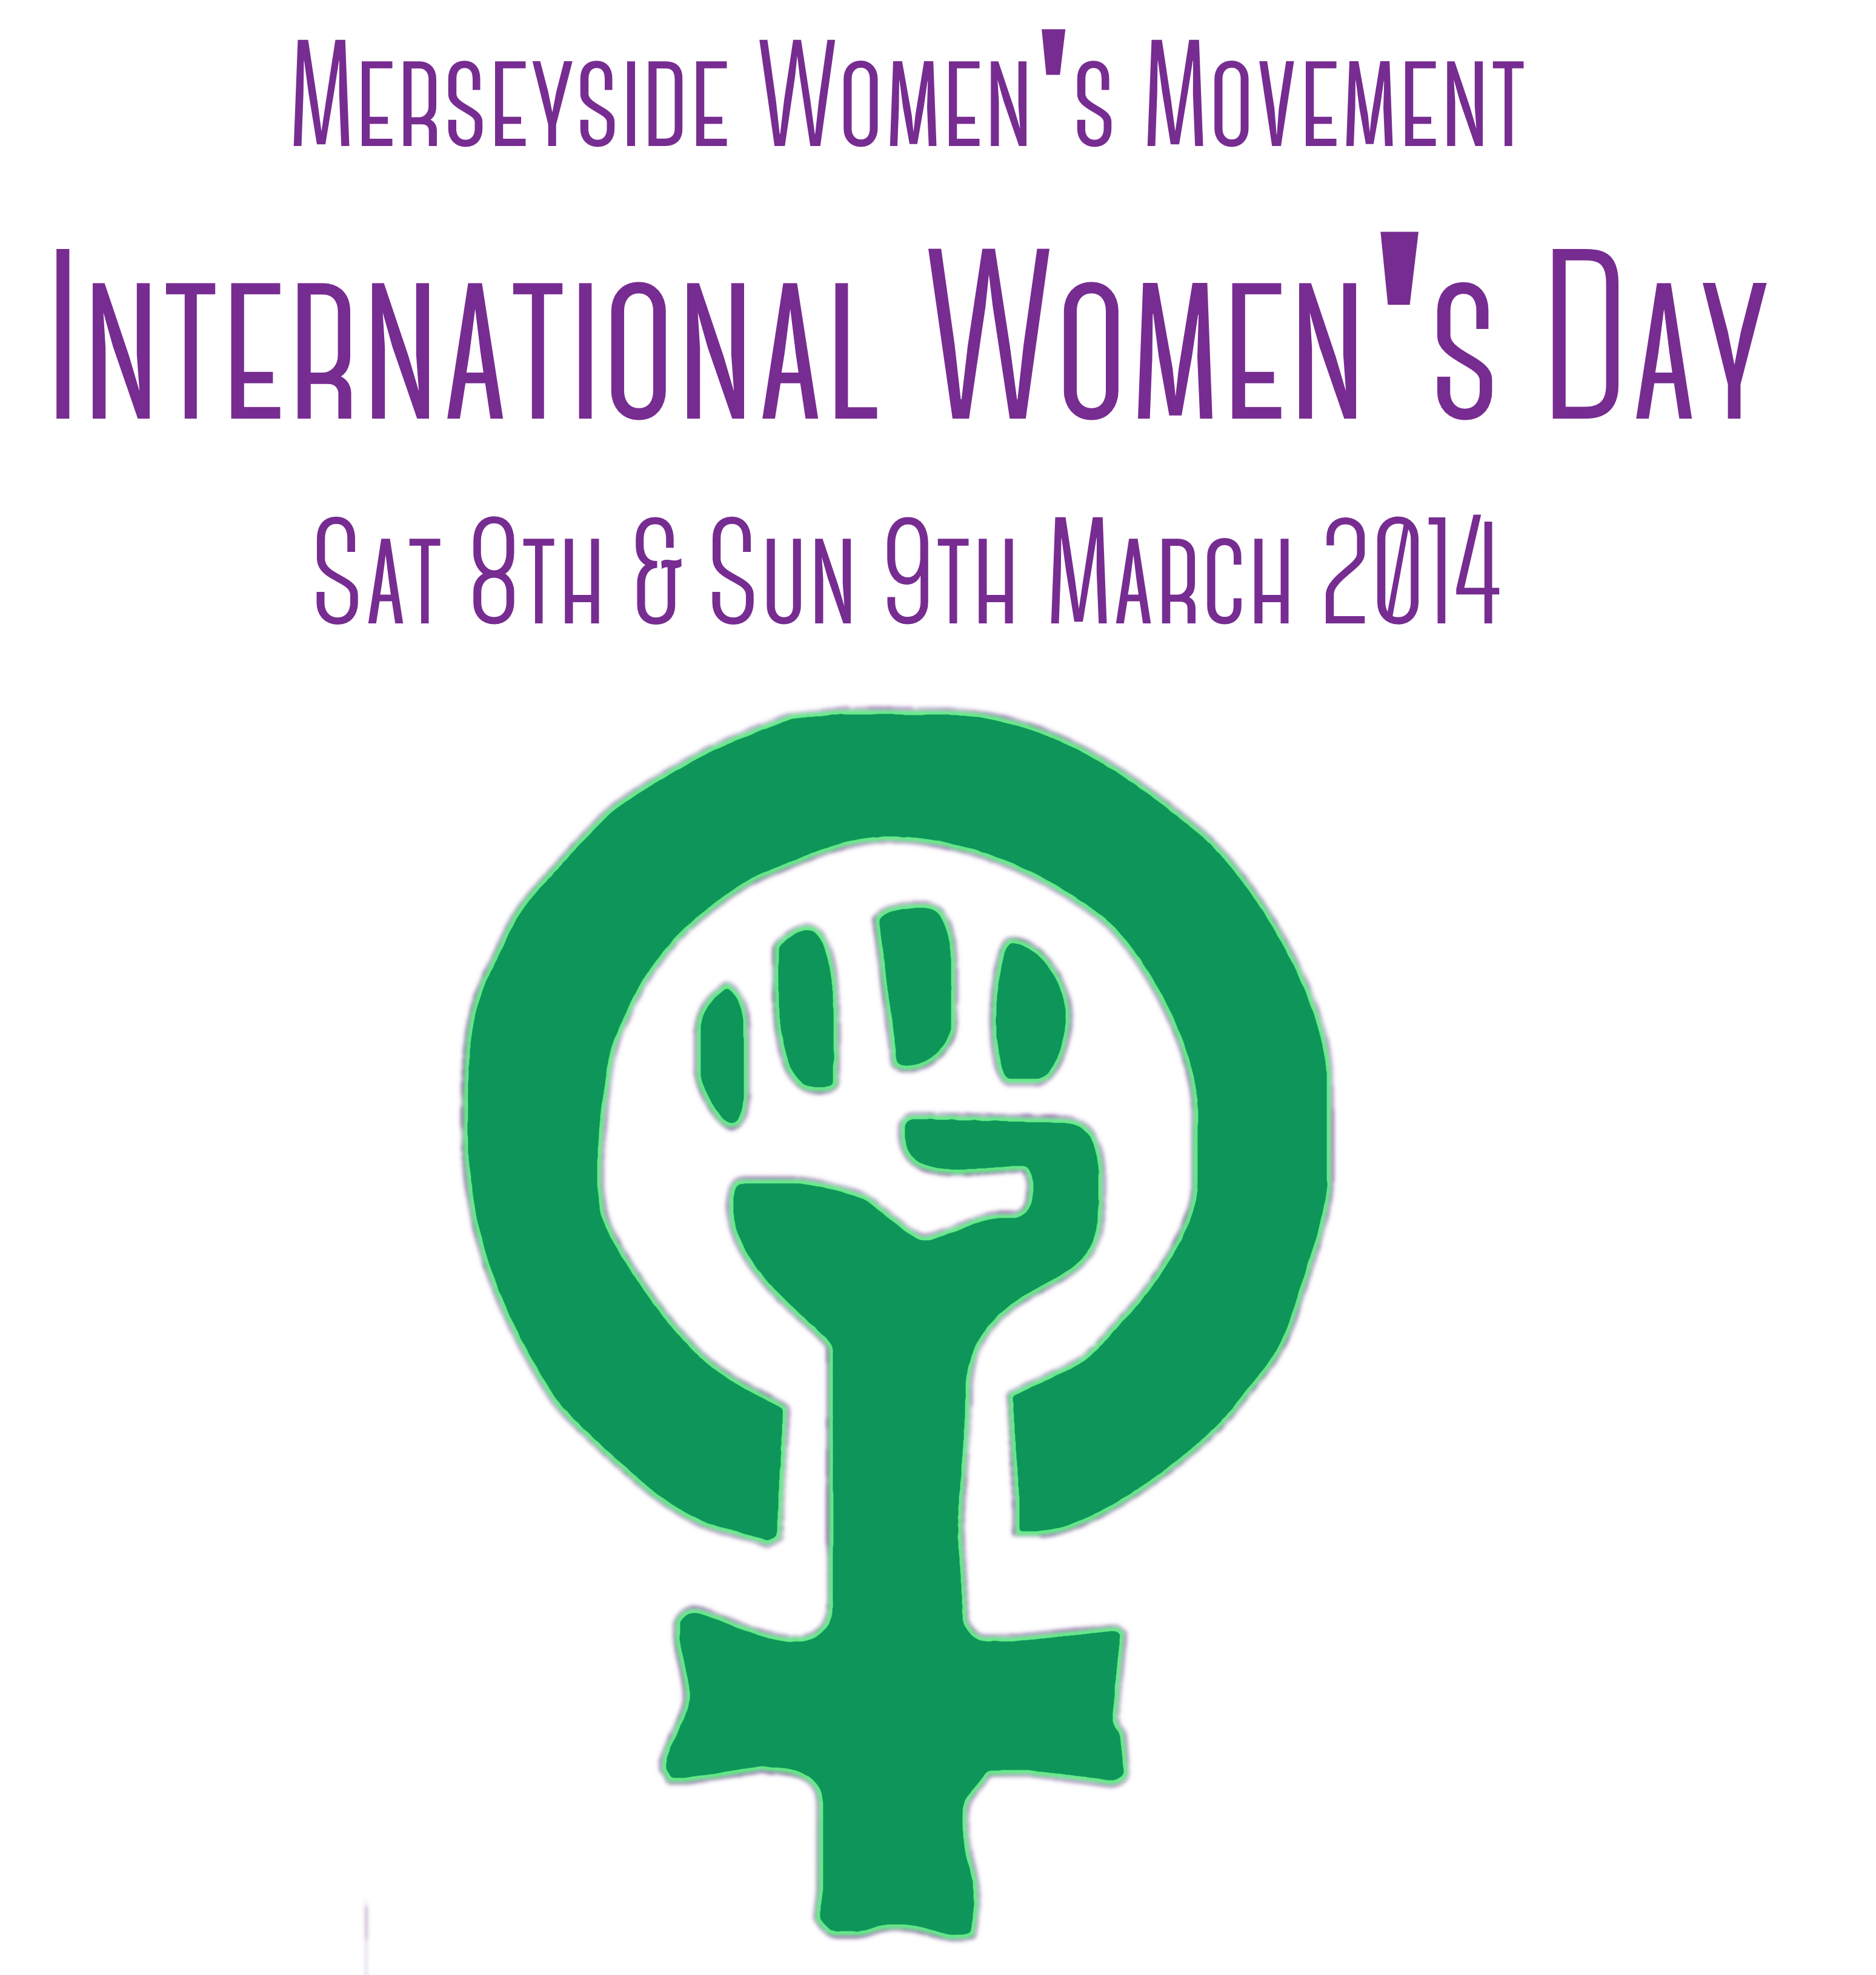 International Women's Day 2014 Events